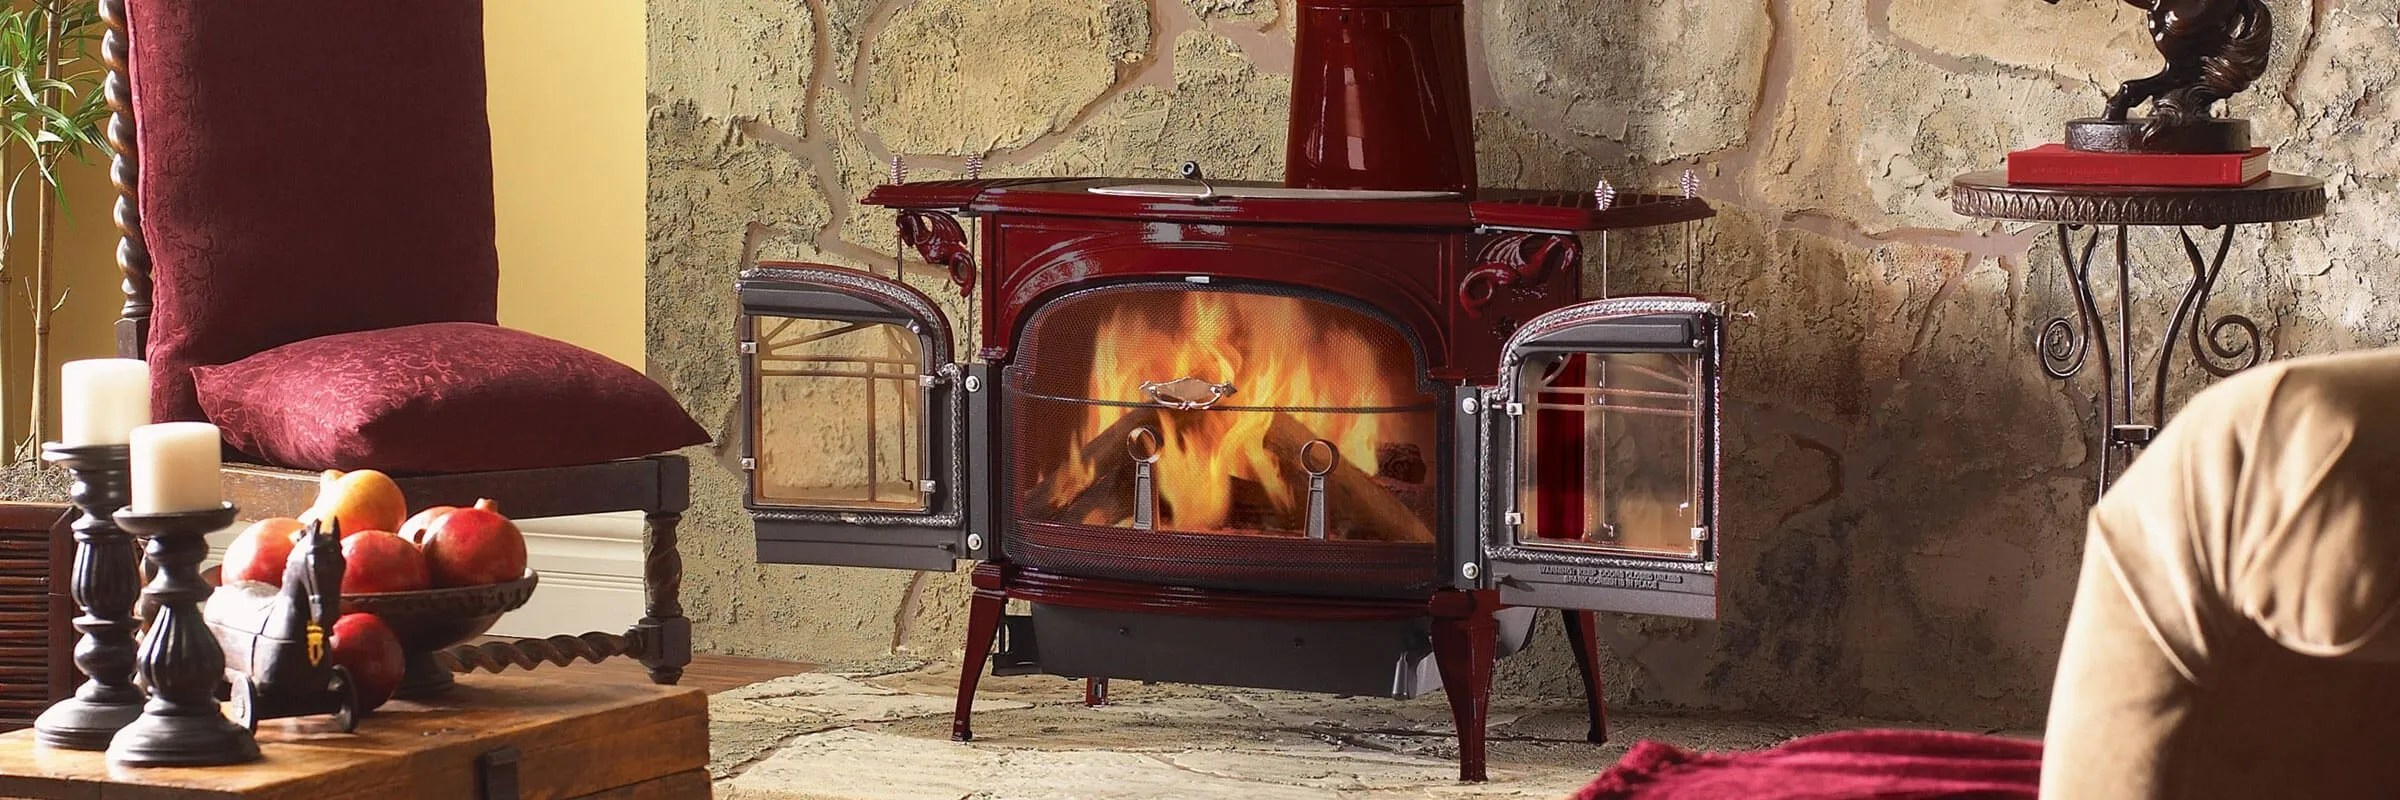 Artificial Fireplaces Watson S Fireplaces